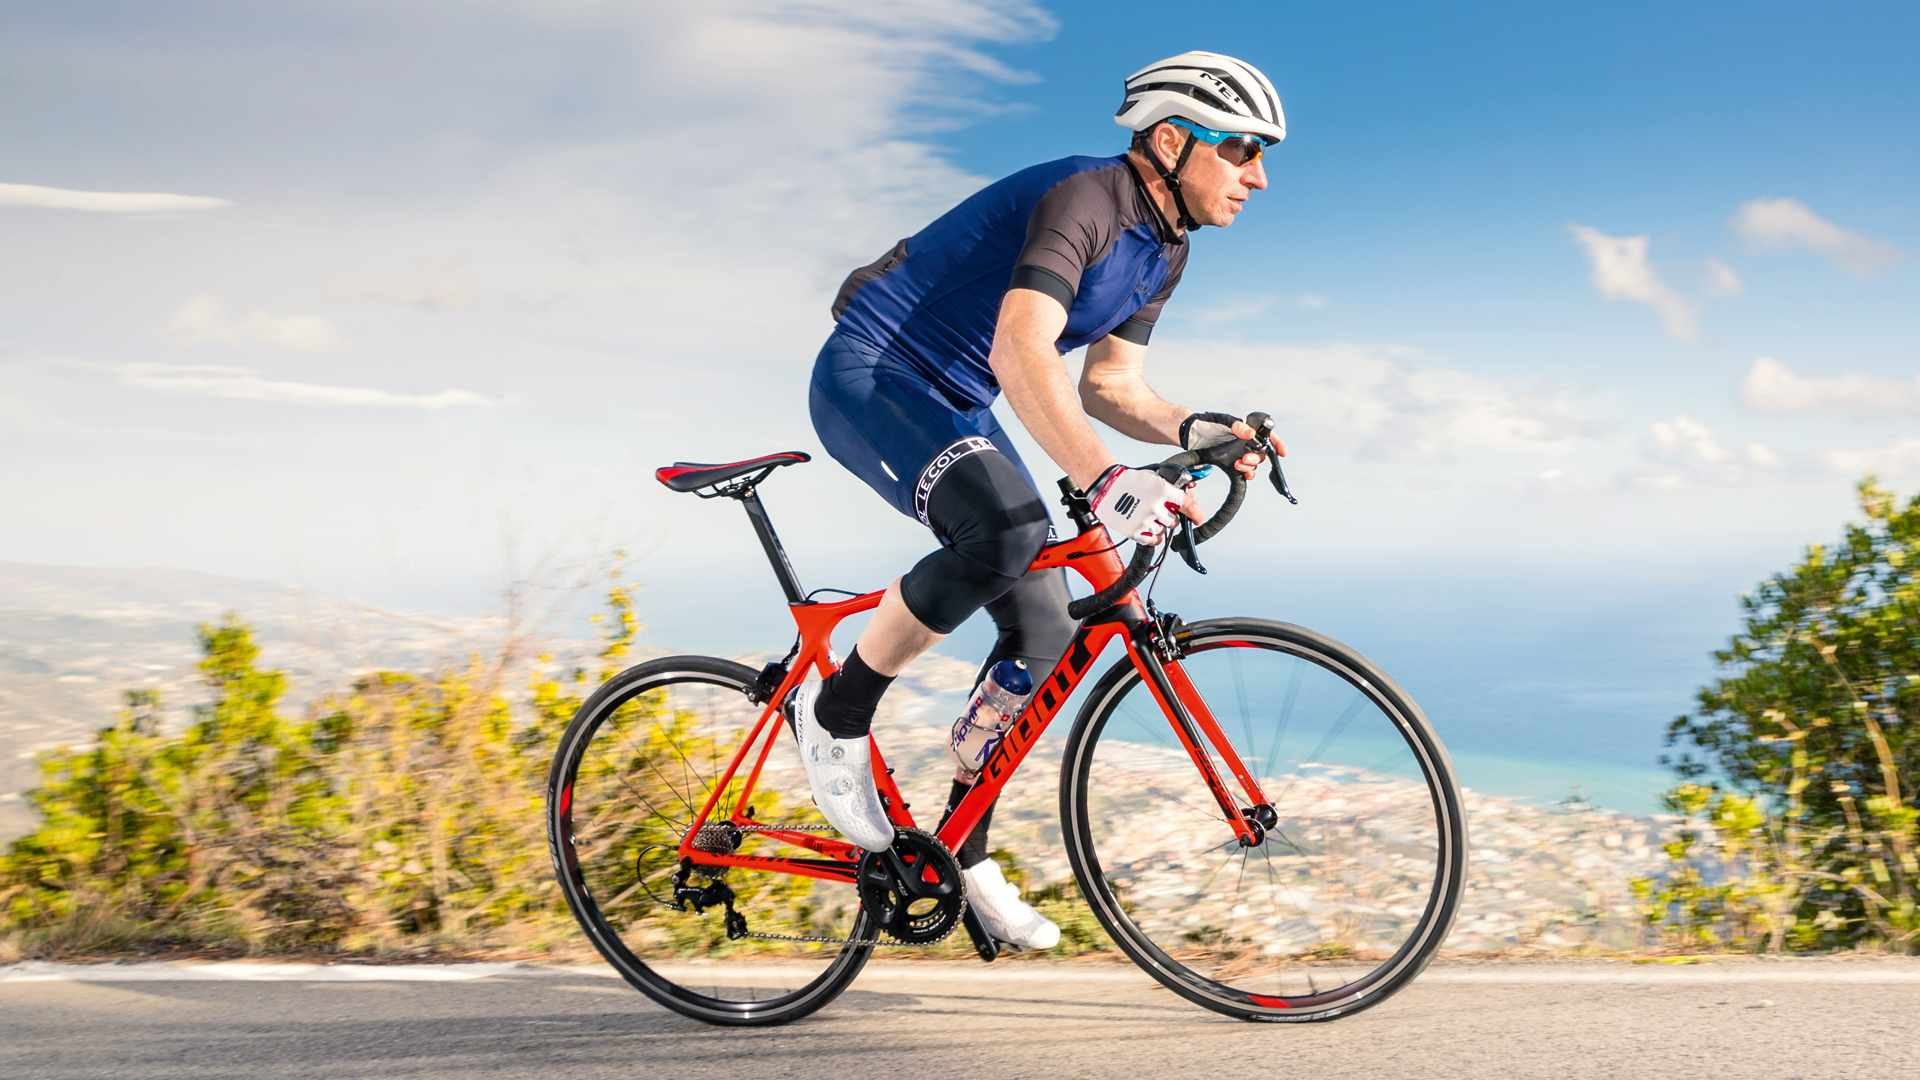 The Giant TCR Advanced 2 was crowned our 2018 road bike of the year